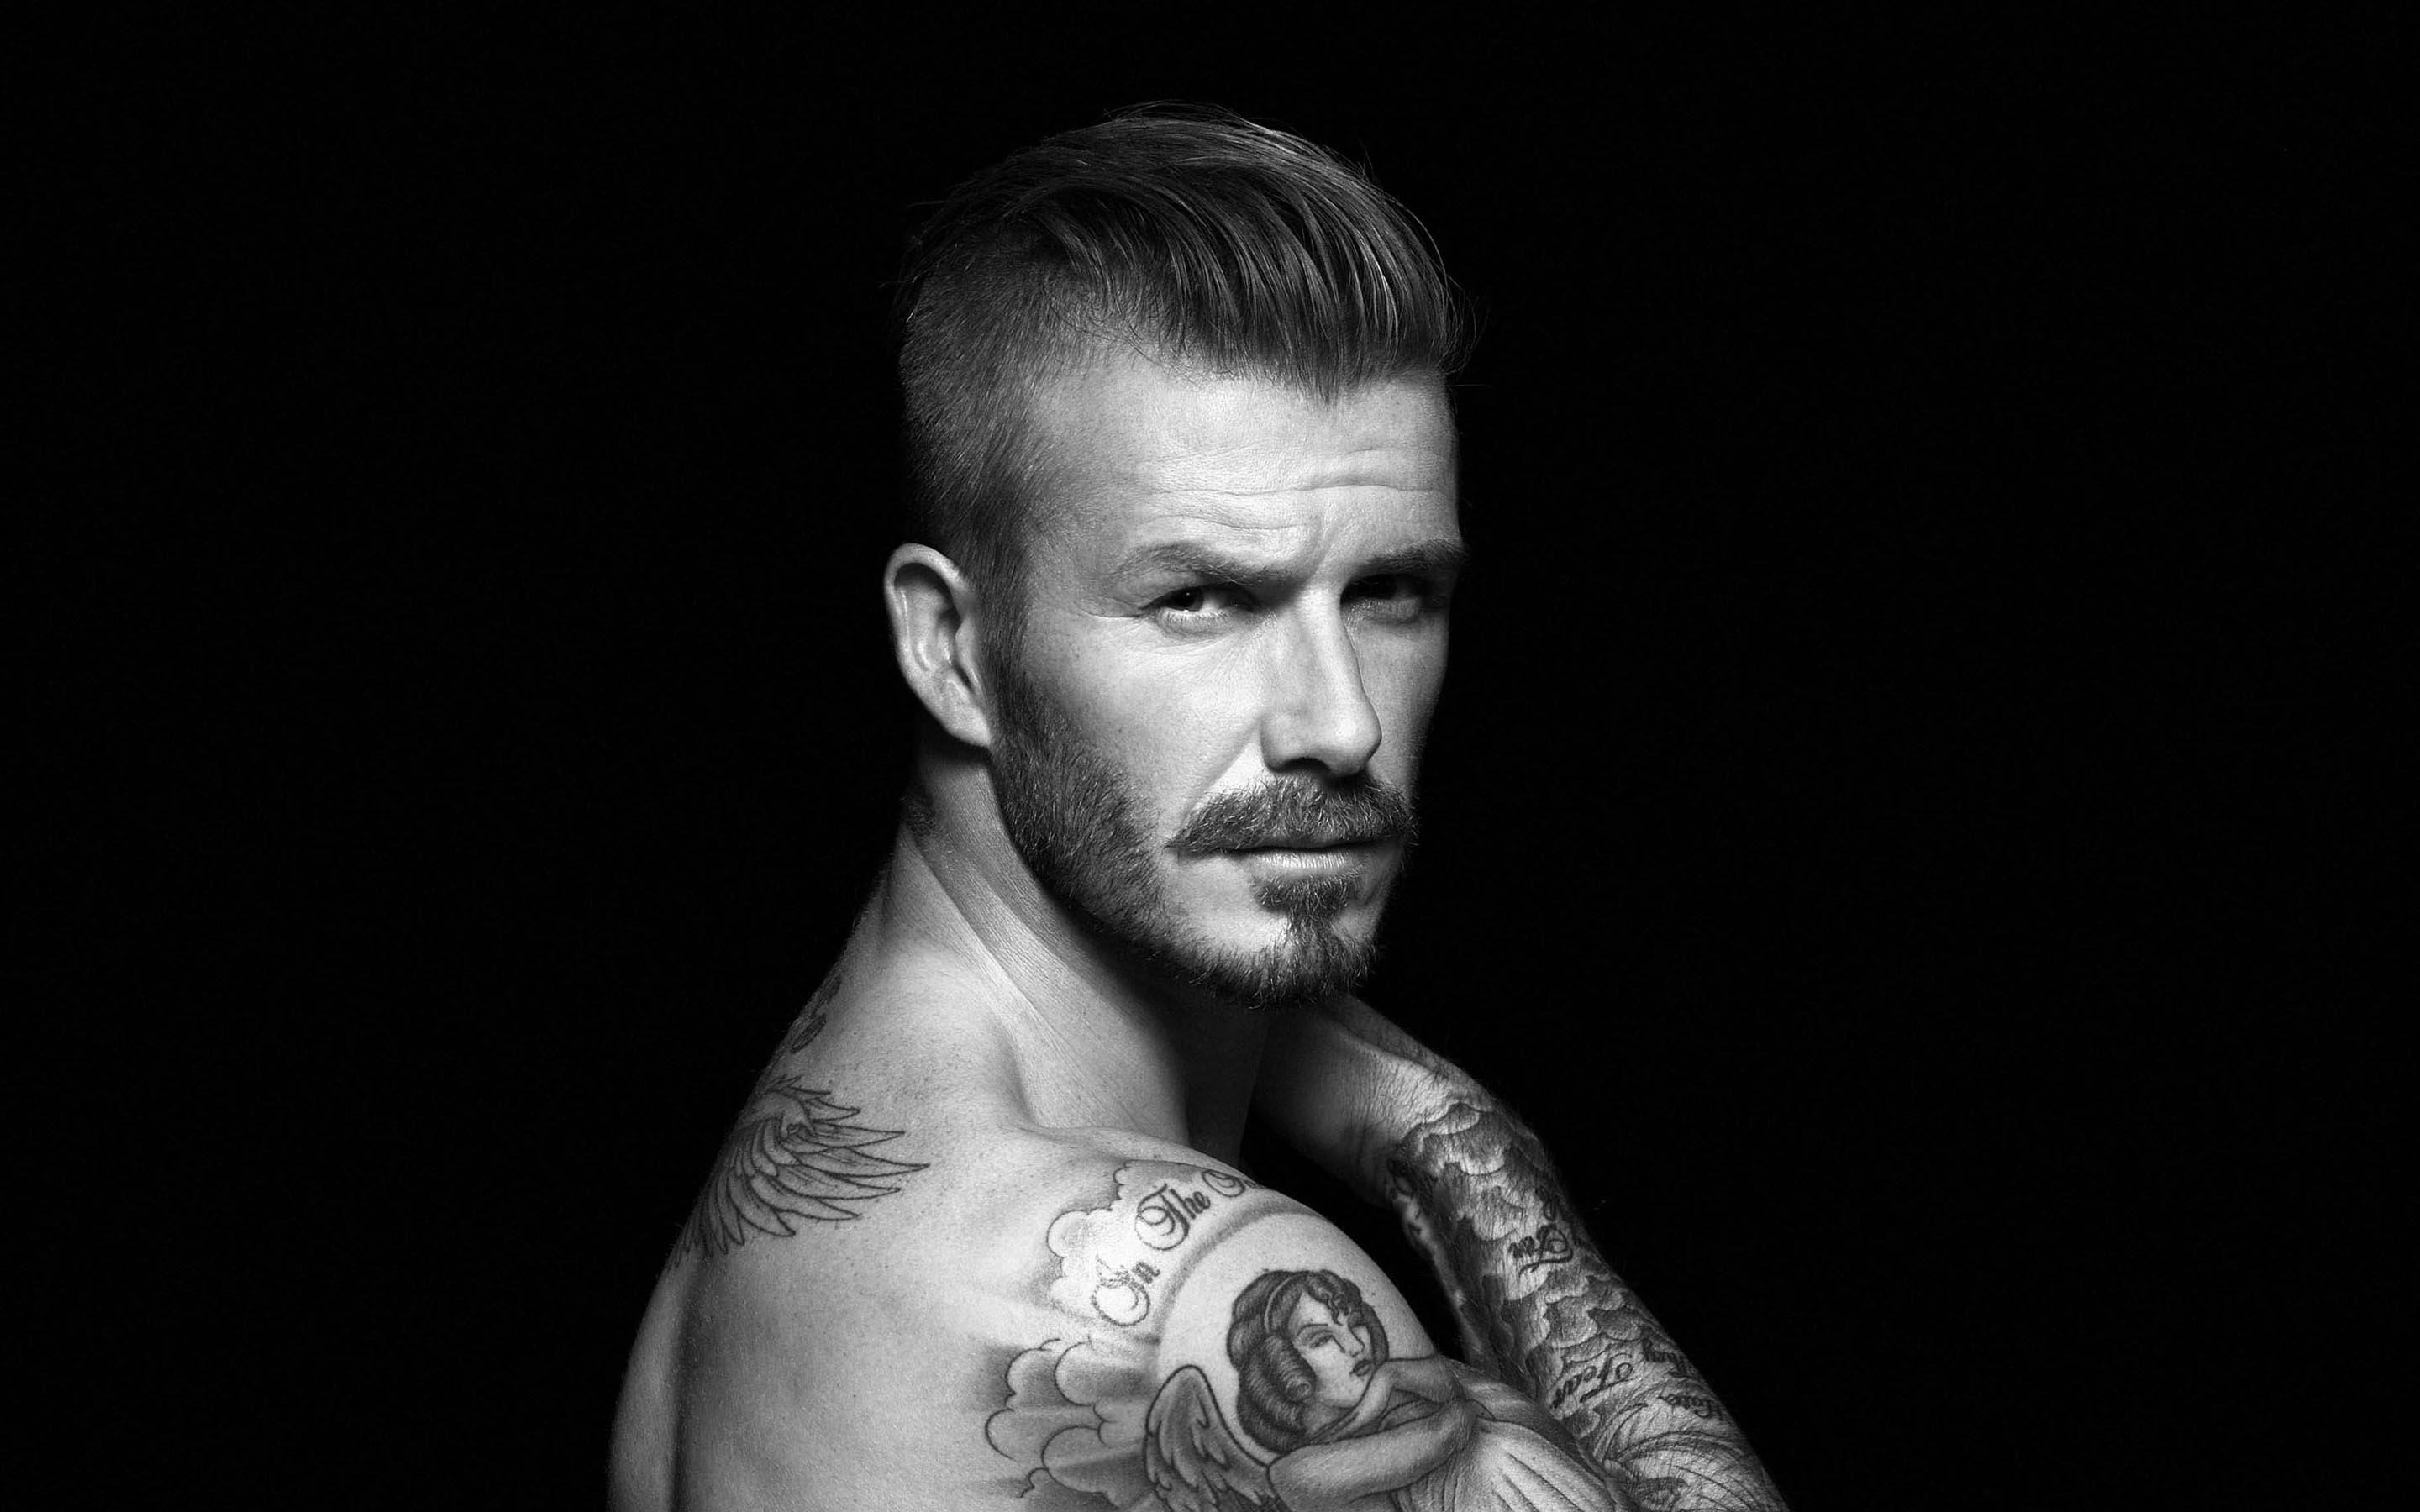 David Beckham 2014 wallpapers David Beckham pics